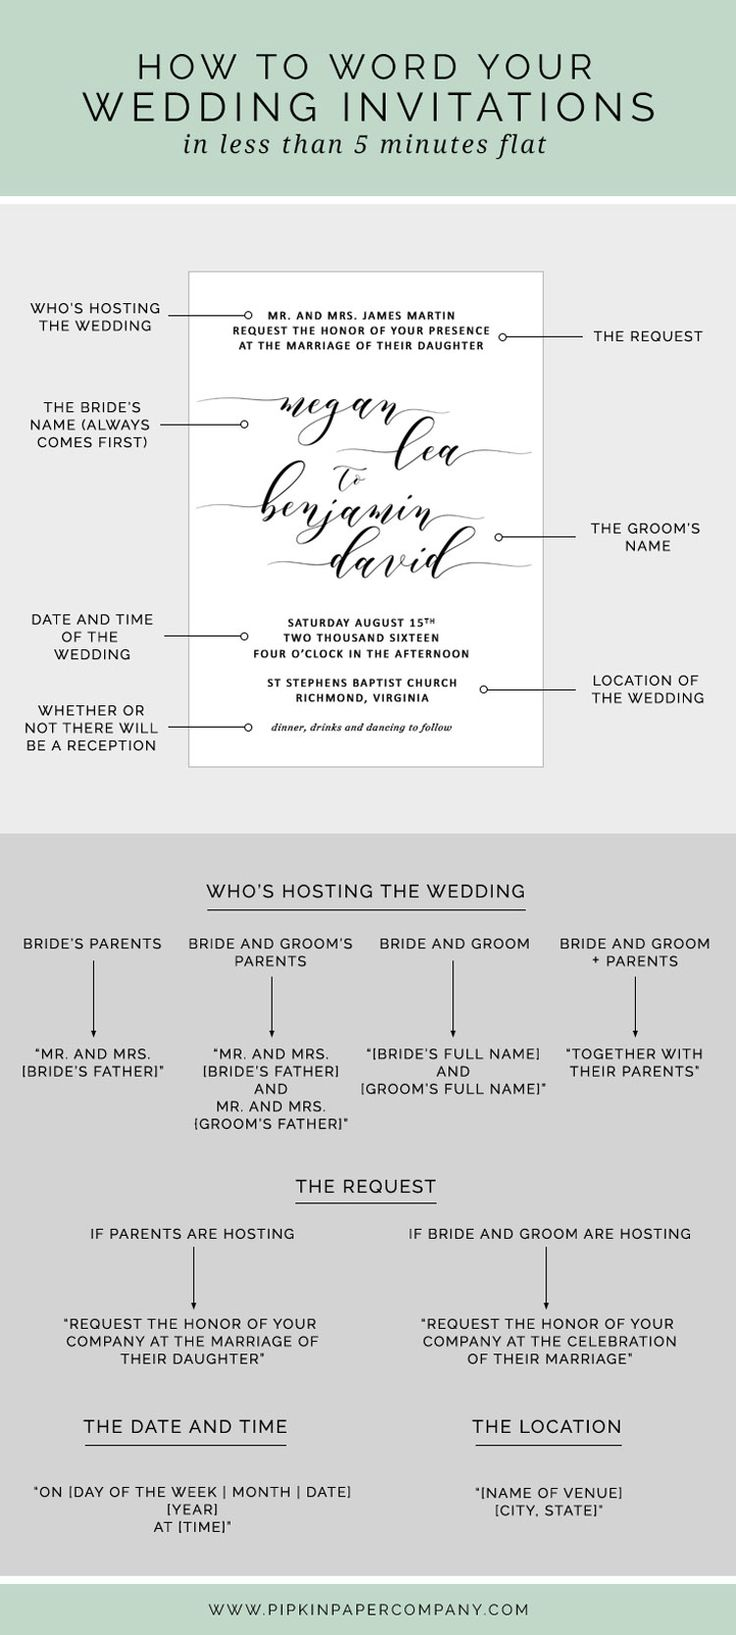 196 Best Wedding Plans Images On Pinterest Wedding Ideas